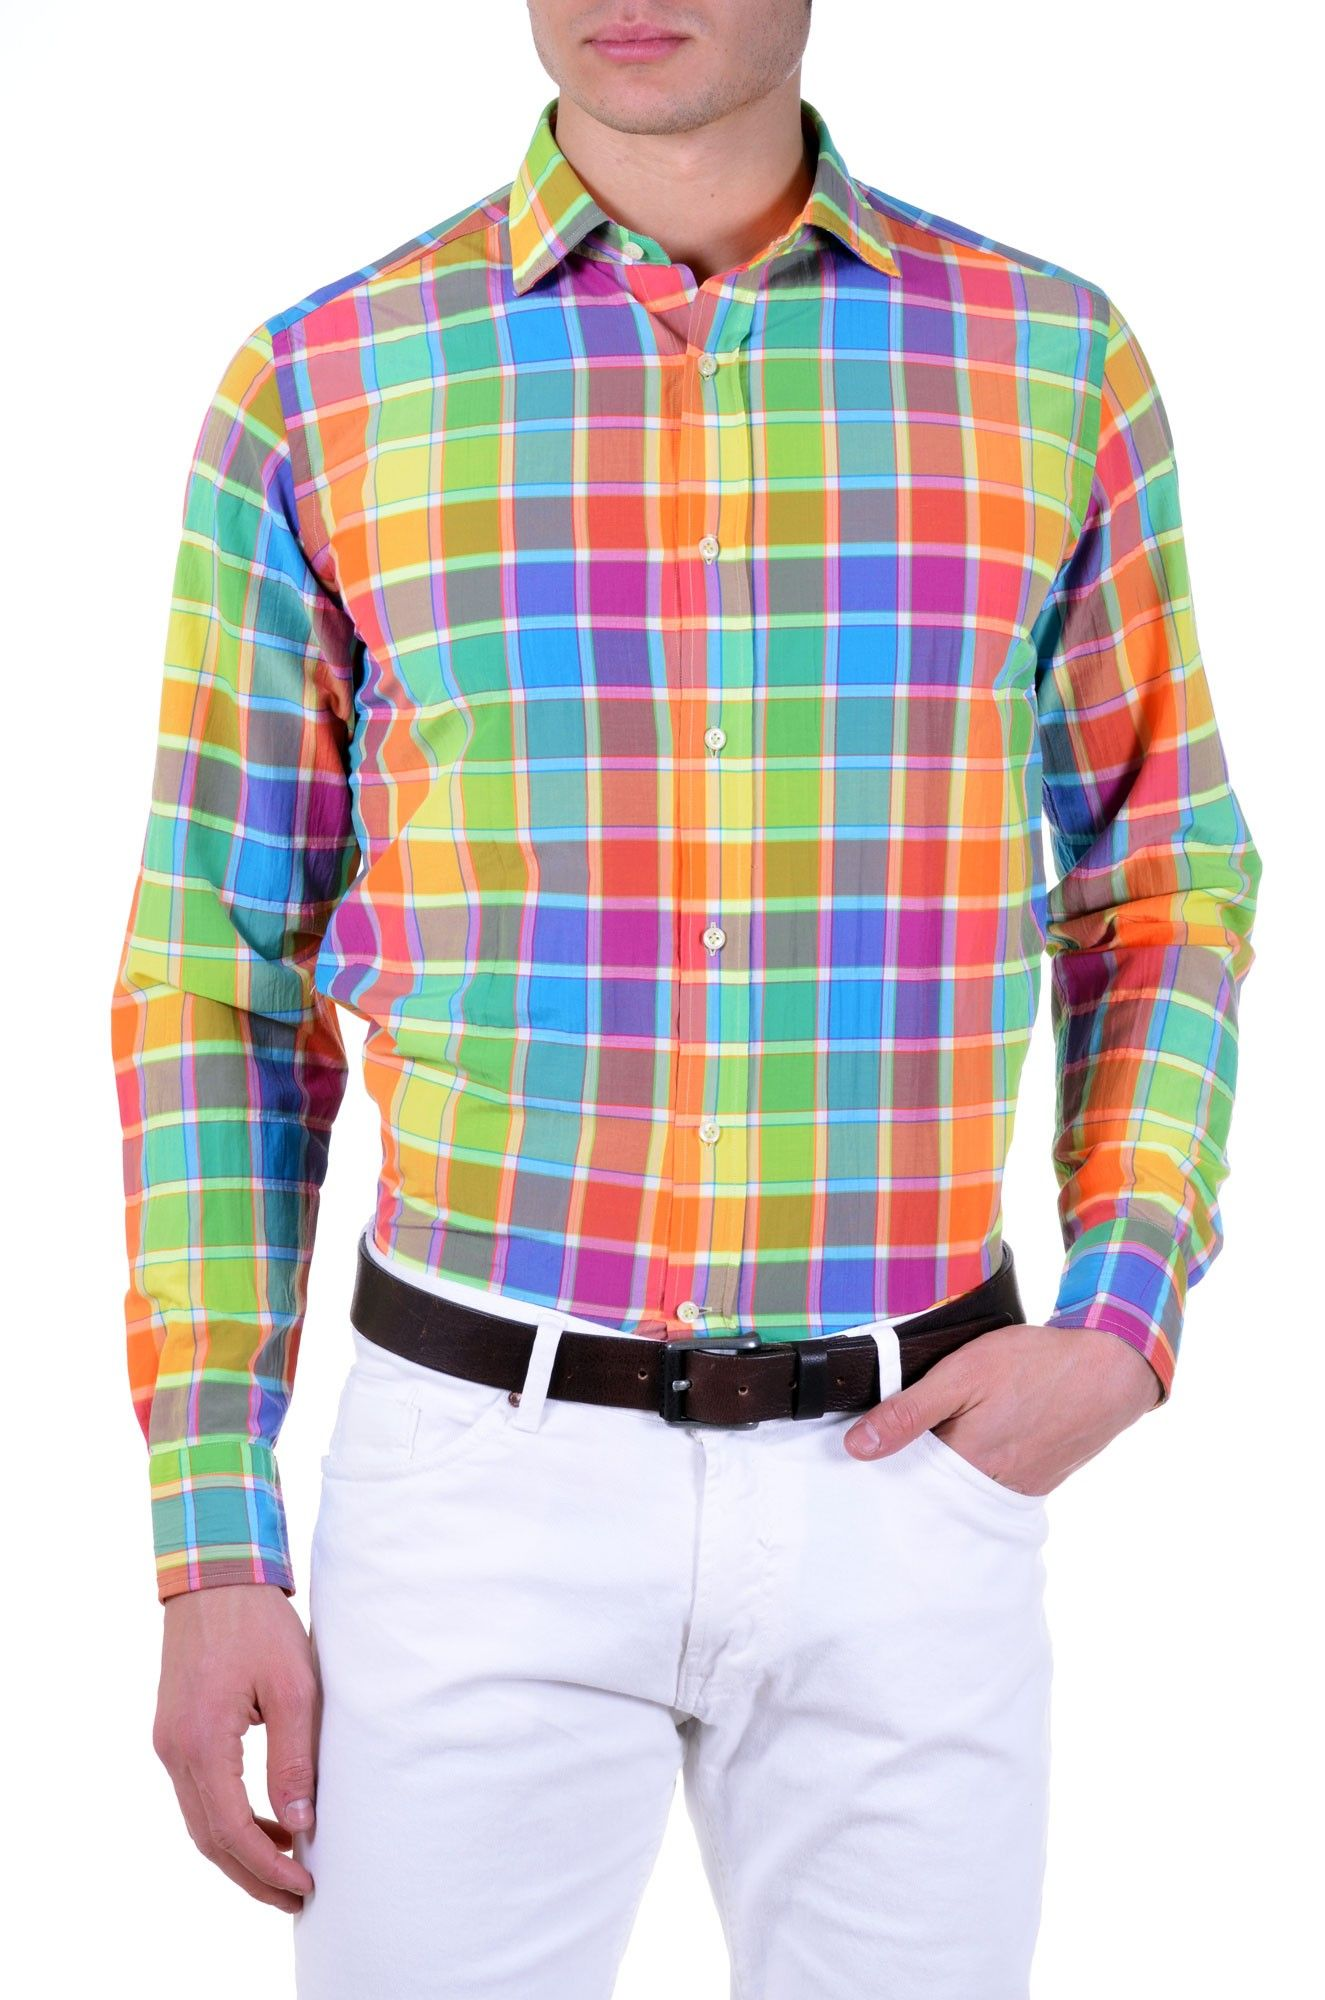 Fluorescent color Guy Rover Men's Shirt. http://www.kamiceria.com